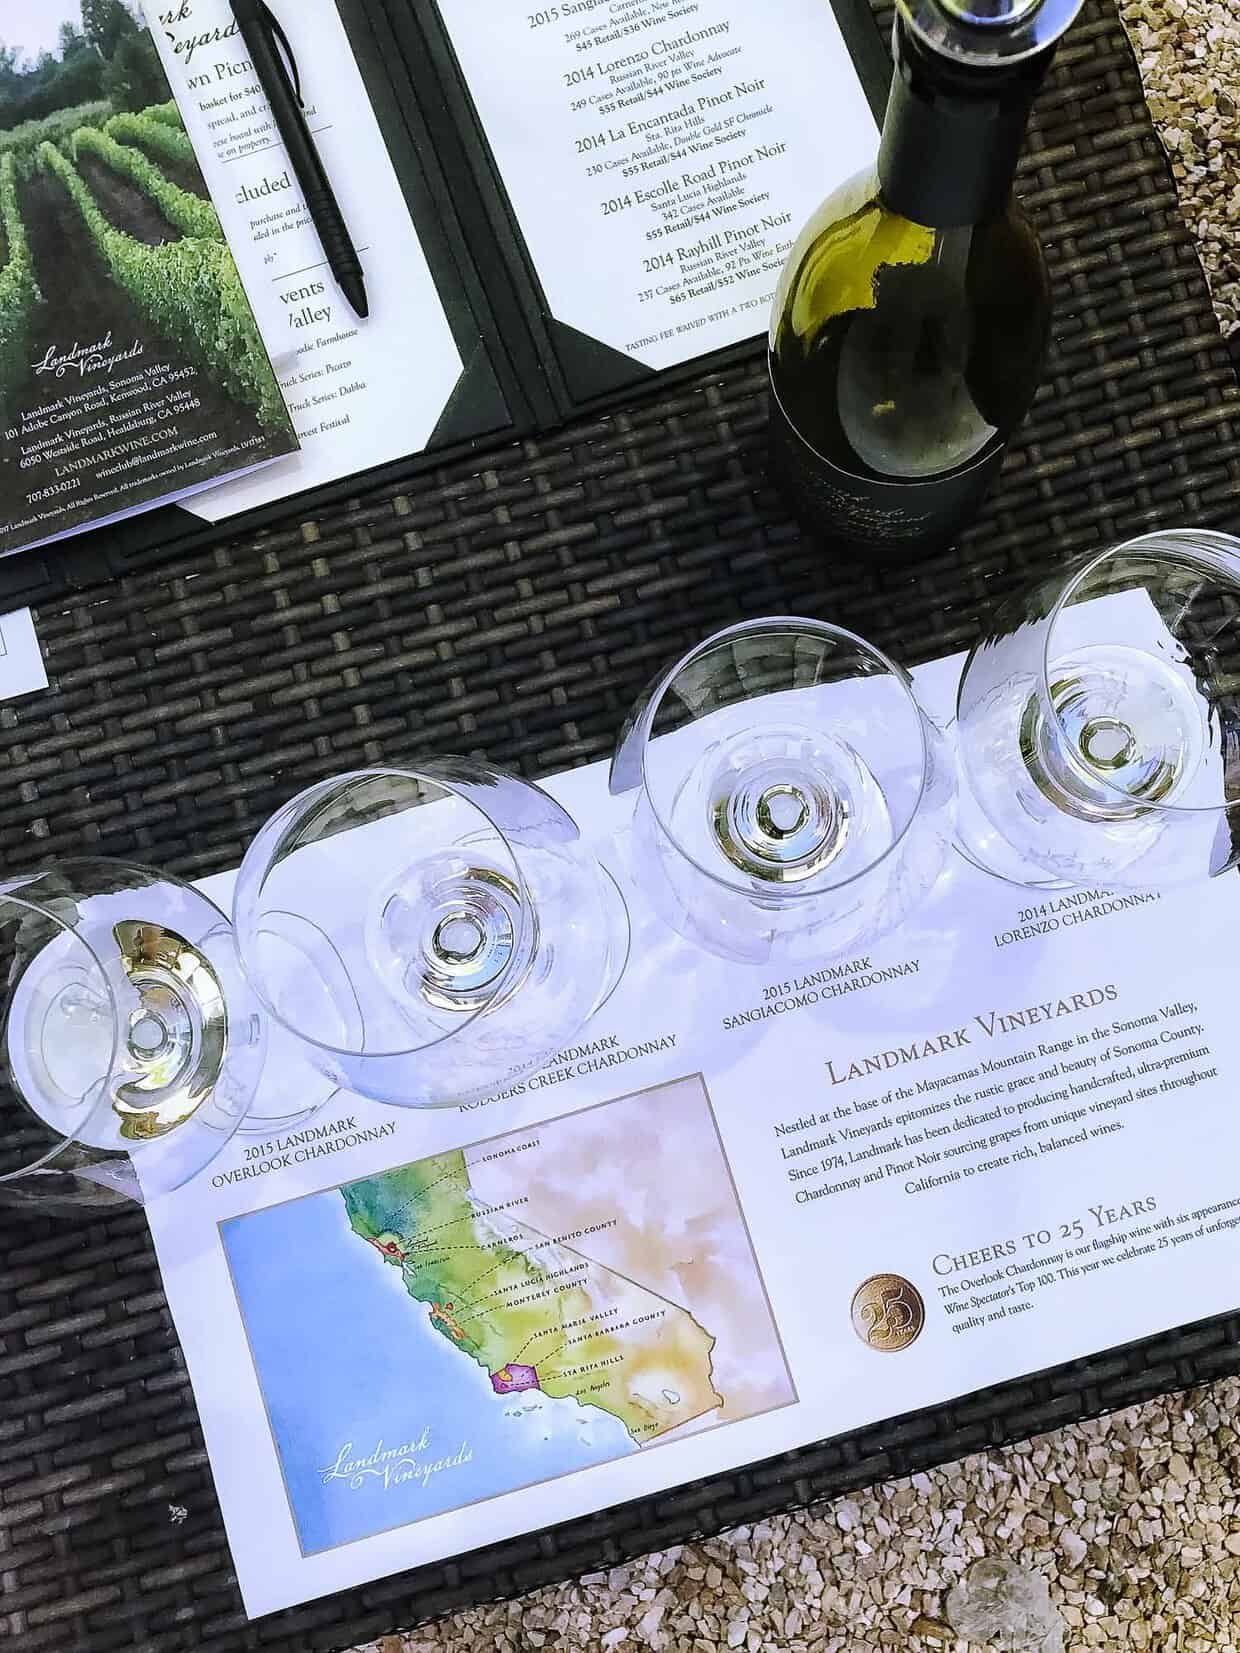 Top down view of 4 wine glasses on a wicker table at a wine tasting.